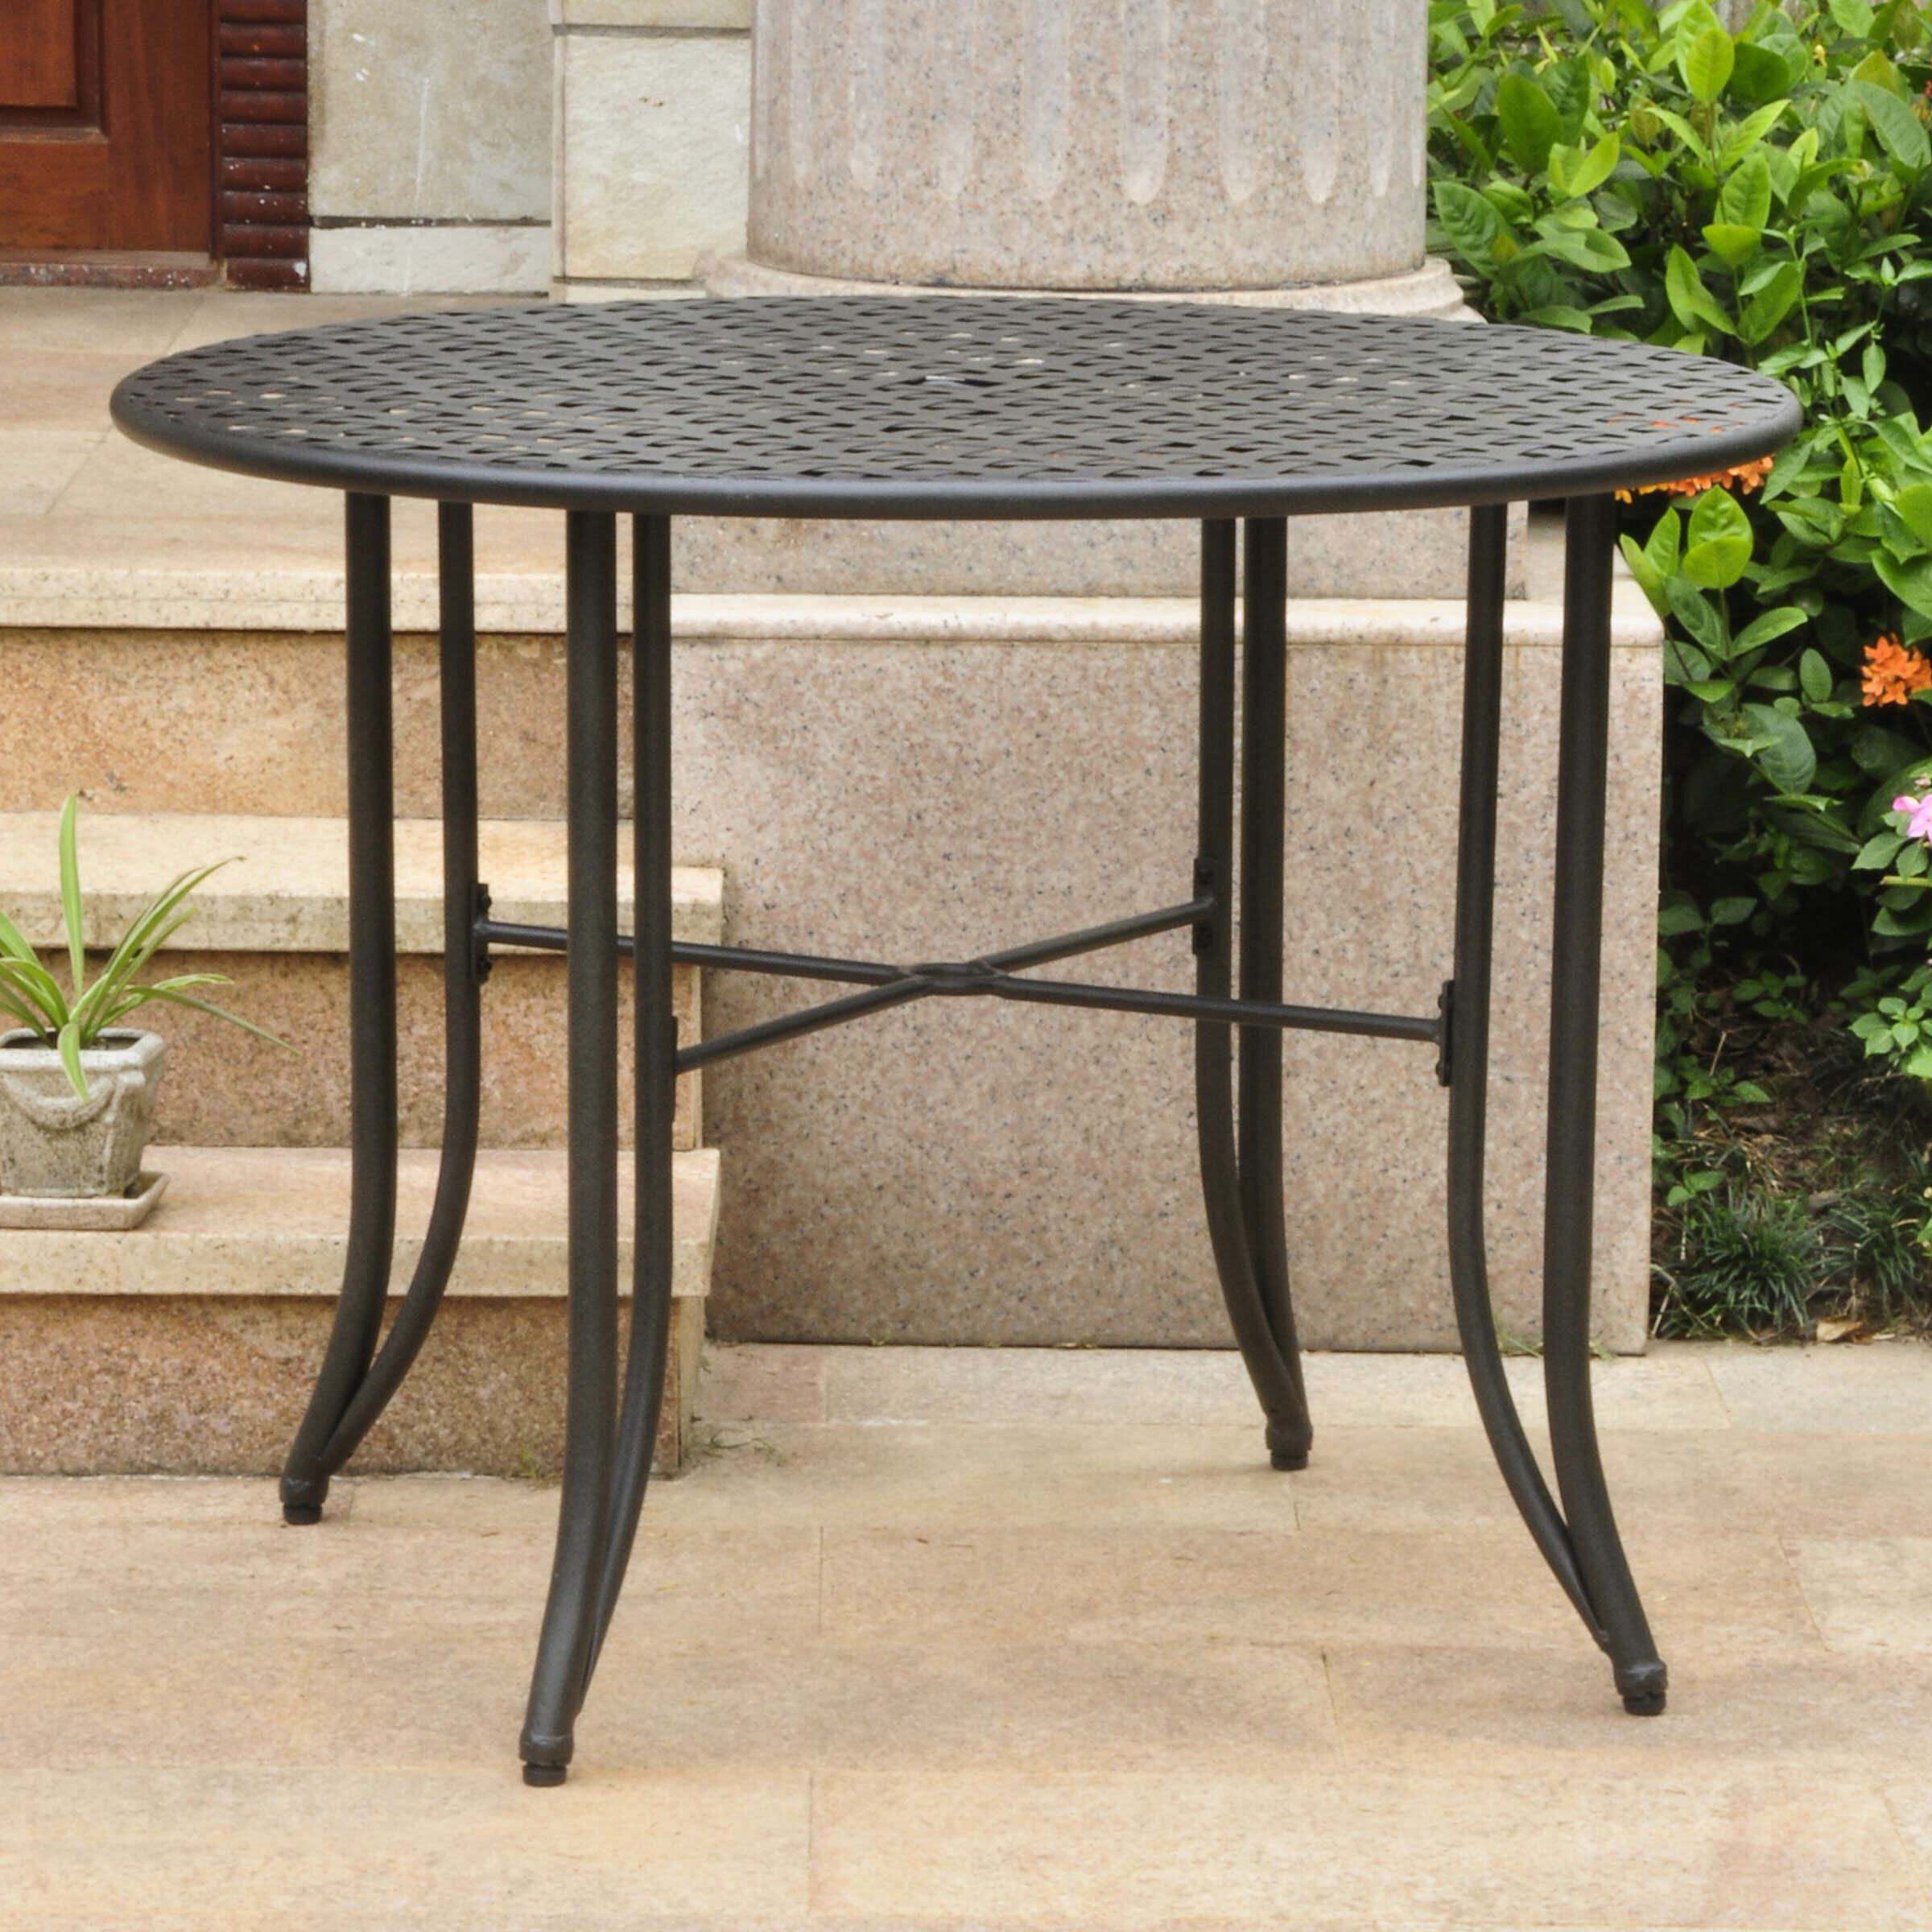 "Darby Home Co Doric Iron 39"" Round Patio Dining Table & Reviews"